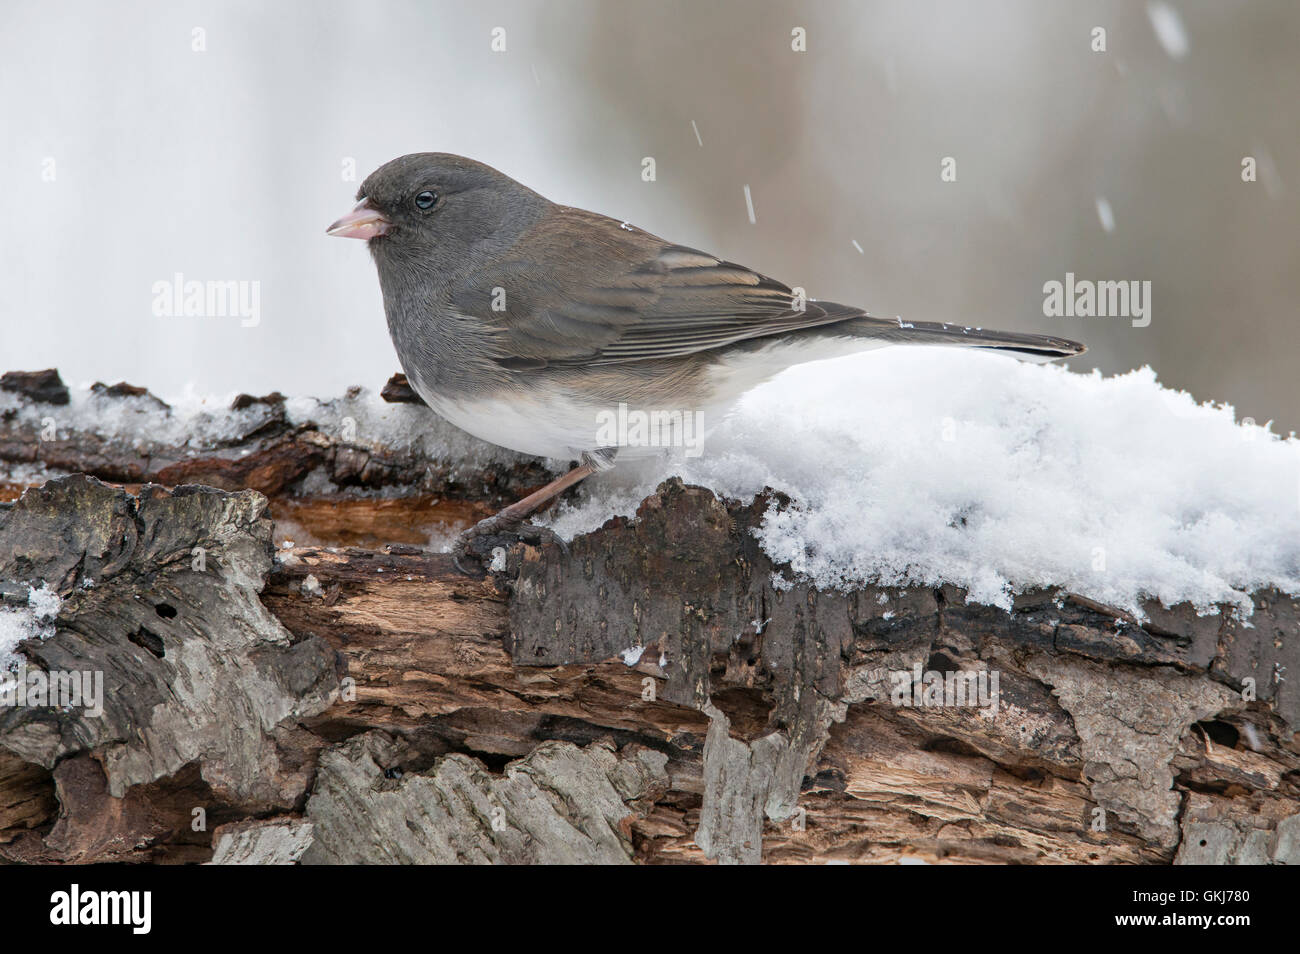 Slate-Colored or Dark-eyed Junco hyemalis, snowing, winter,female, Eastern USA - Stock Image